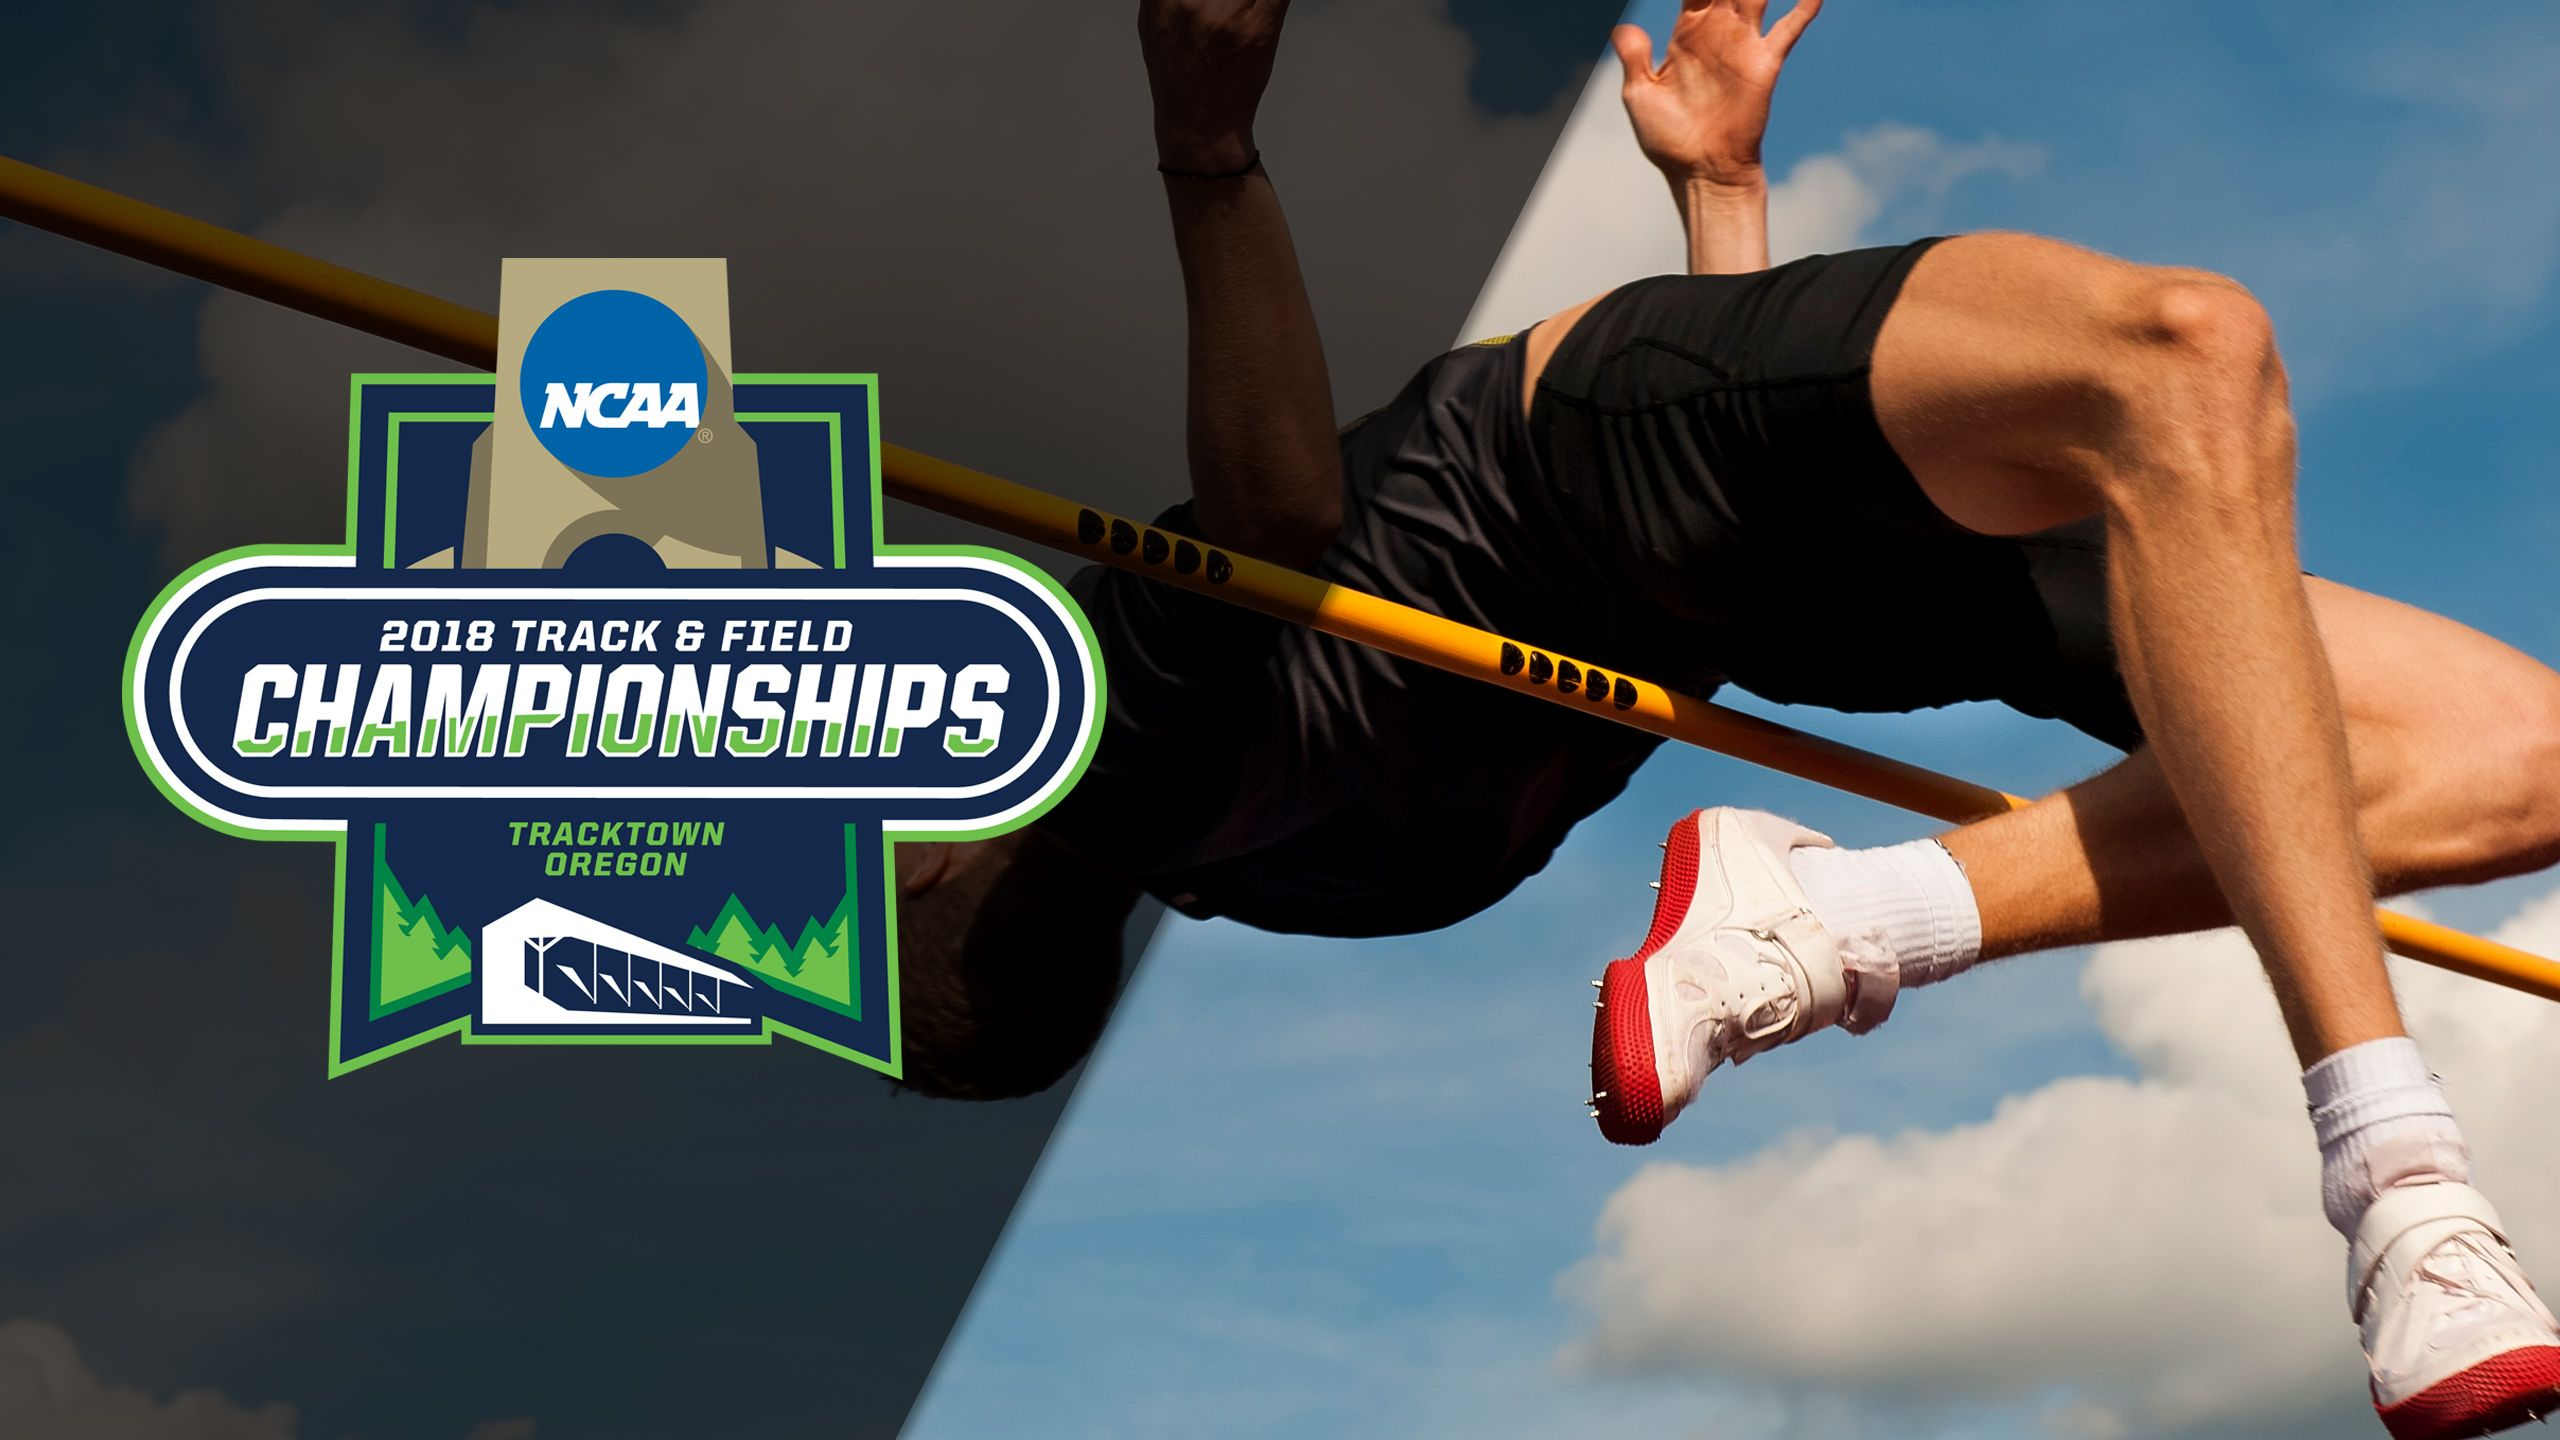 NCAA Track & Field Outdoor Championships - Men's High Jump Final (Feed #2)